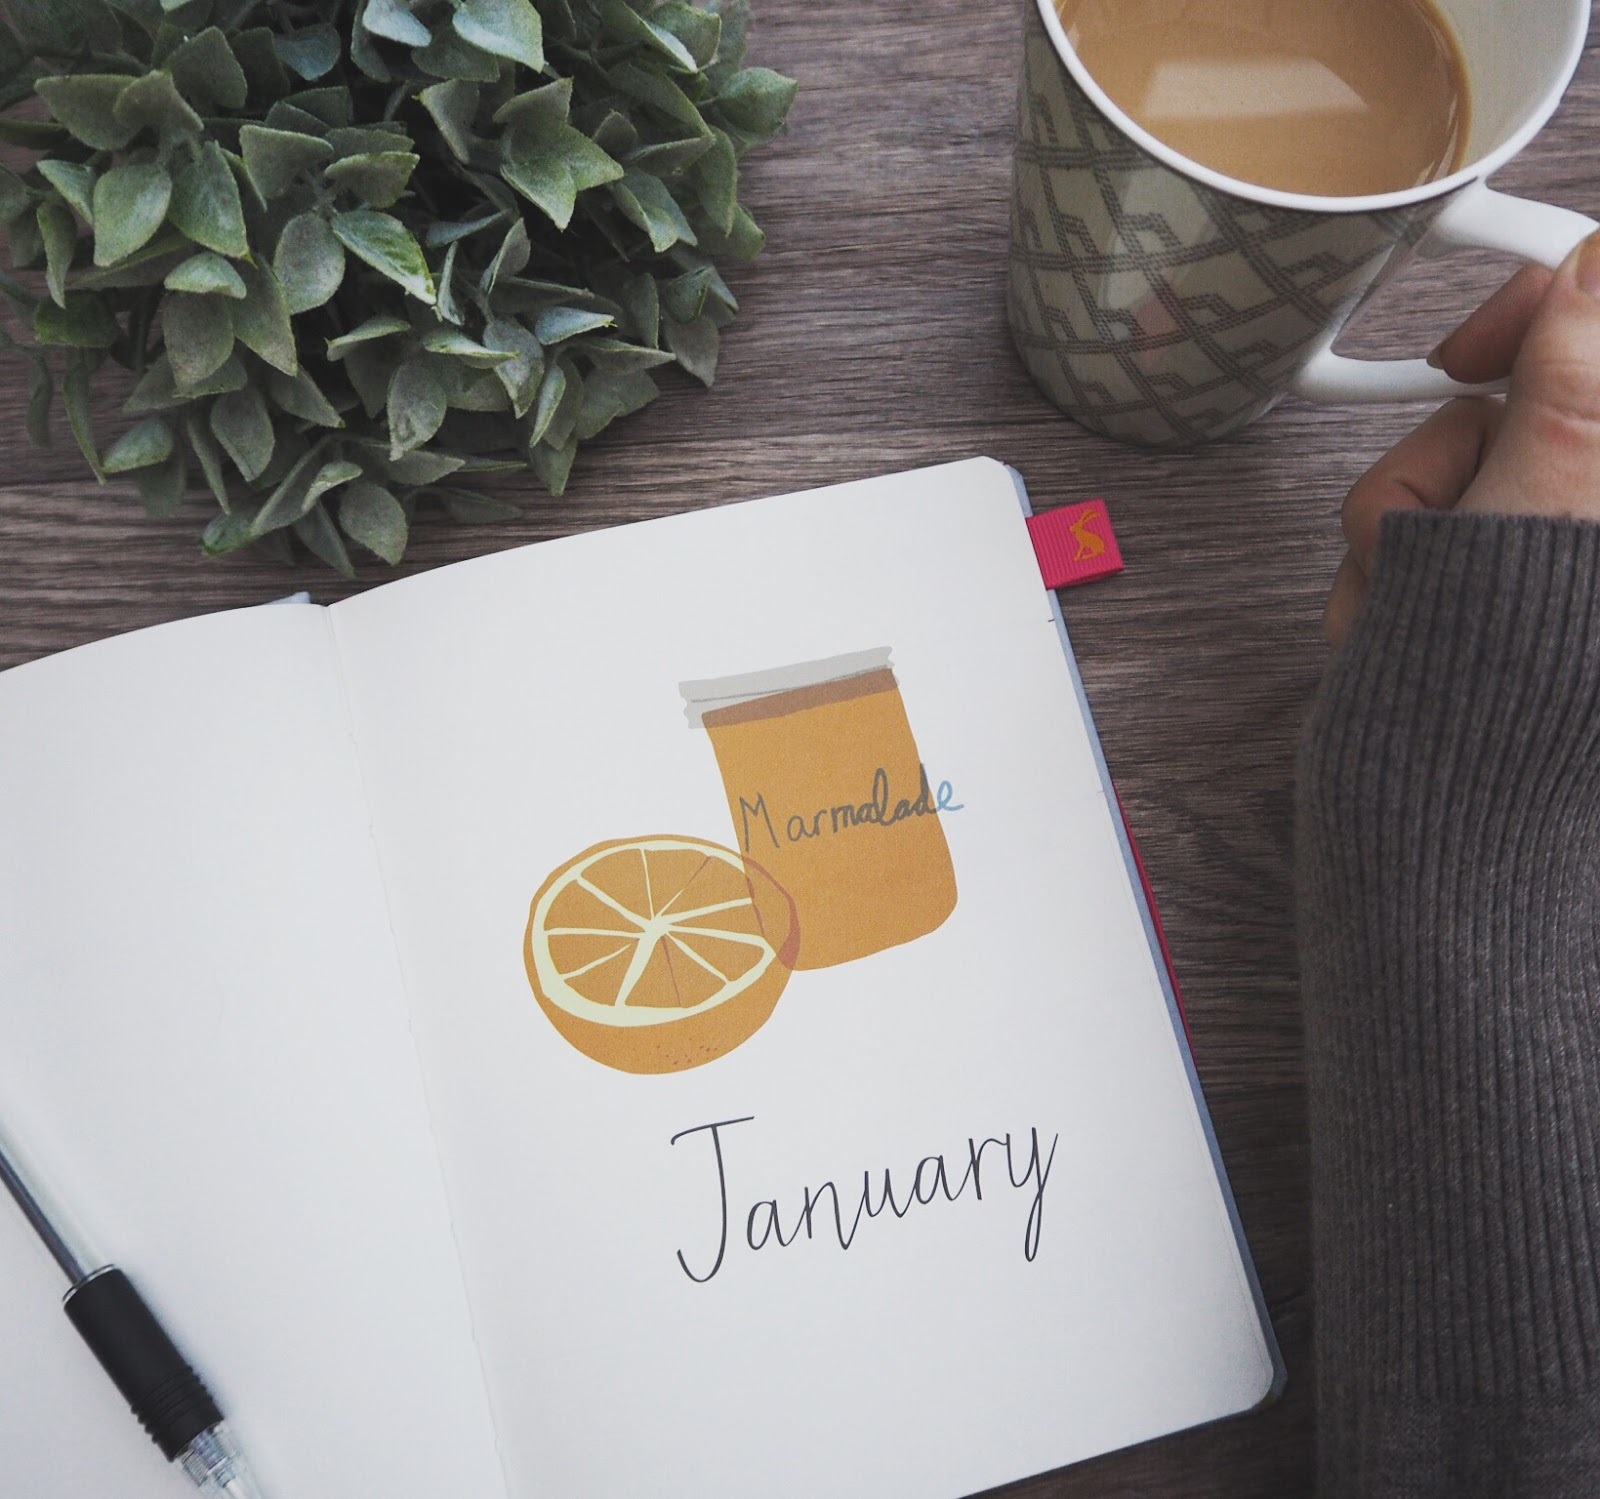 Diary displaying 'January' front page & Cup of tea